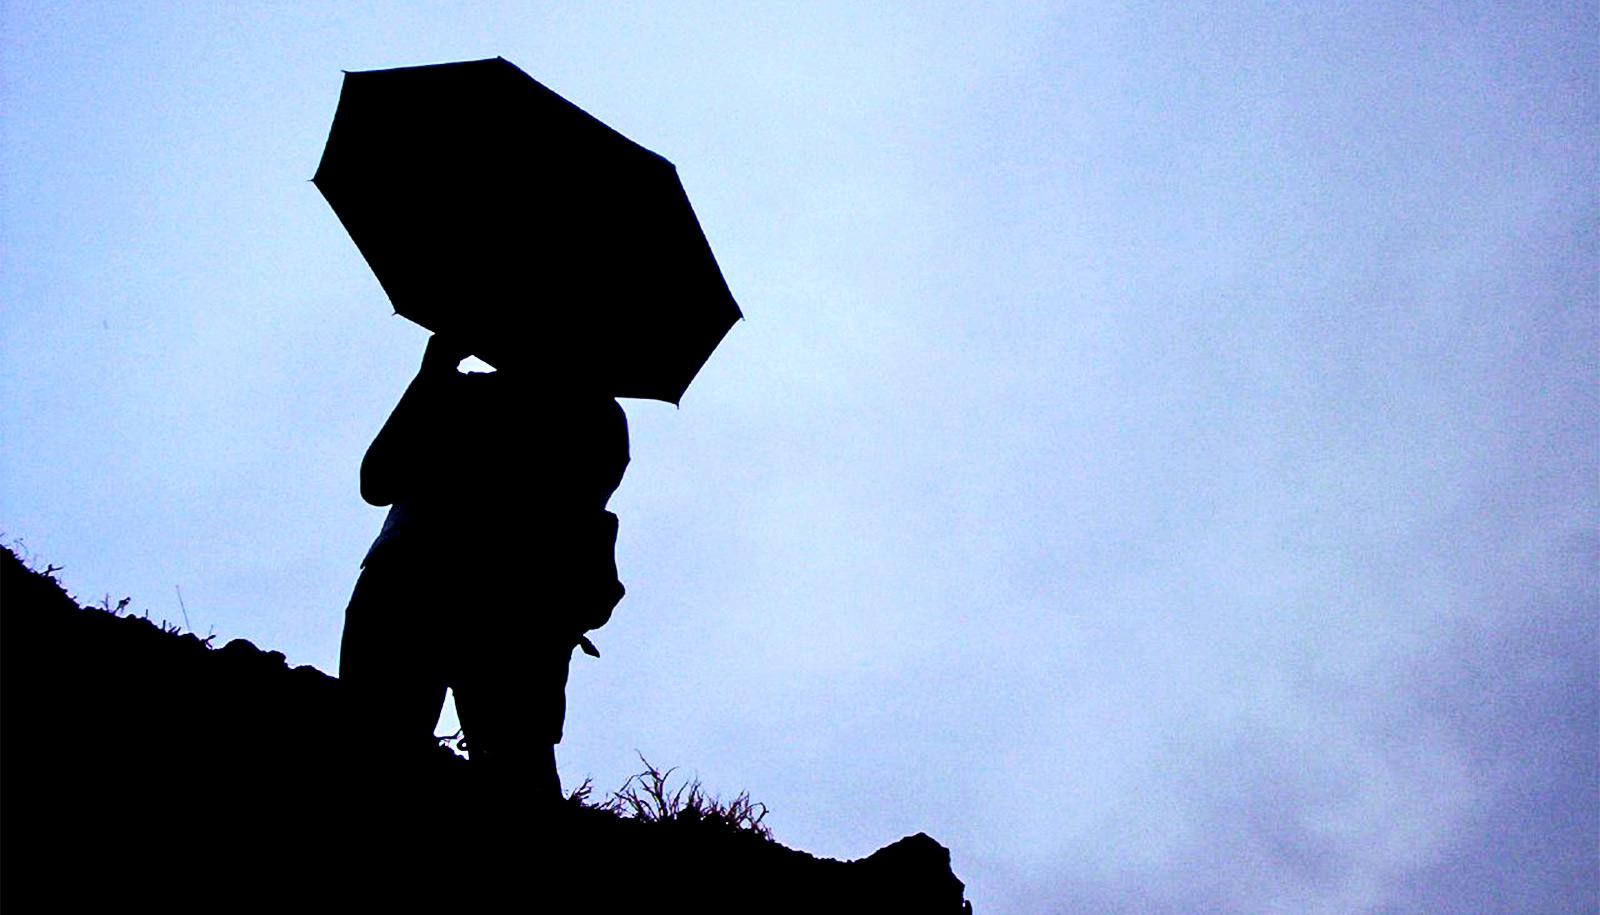 person with umbrella silhouette (Asian summer monsoon concept)